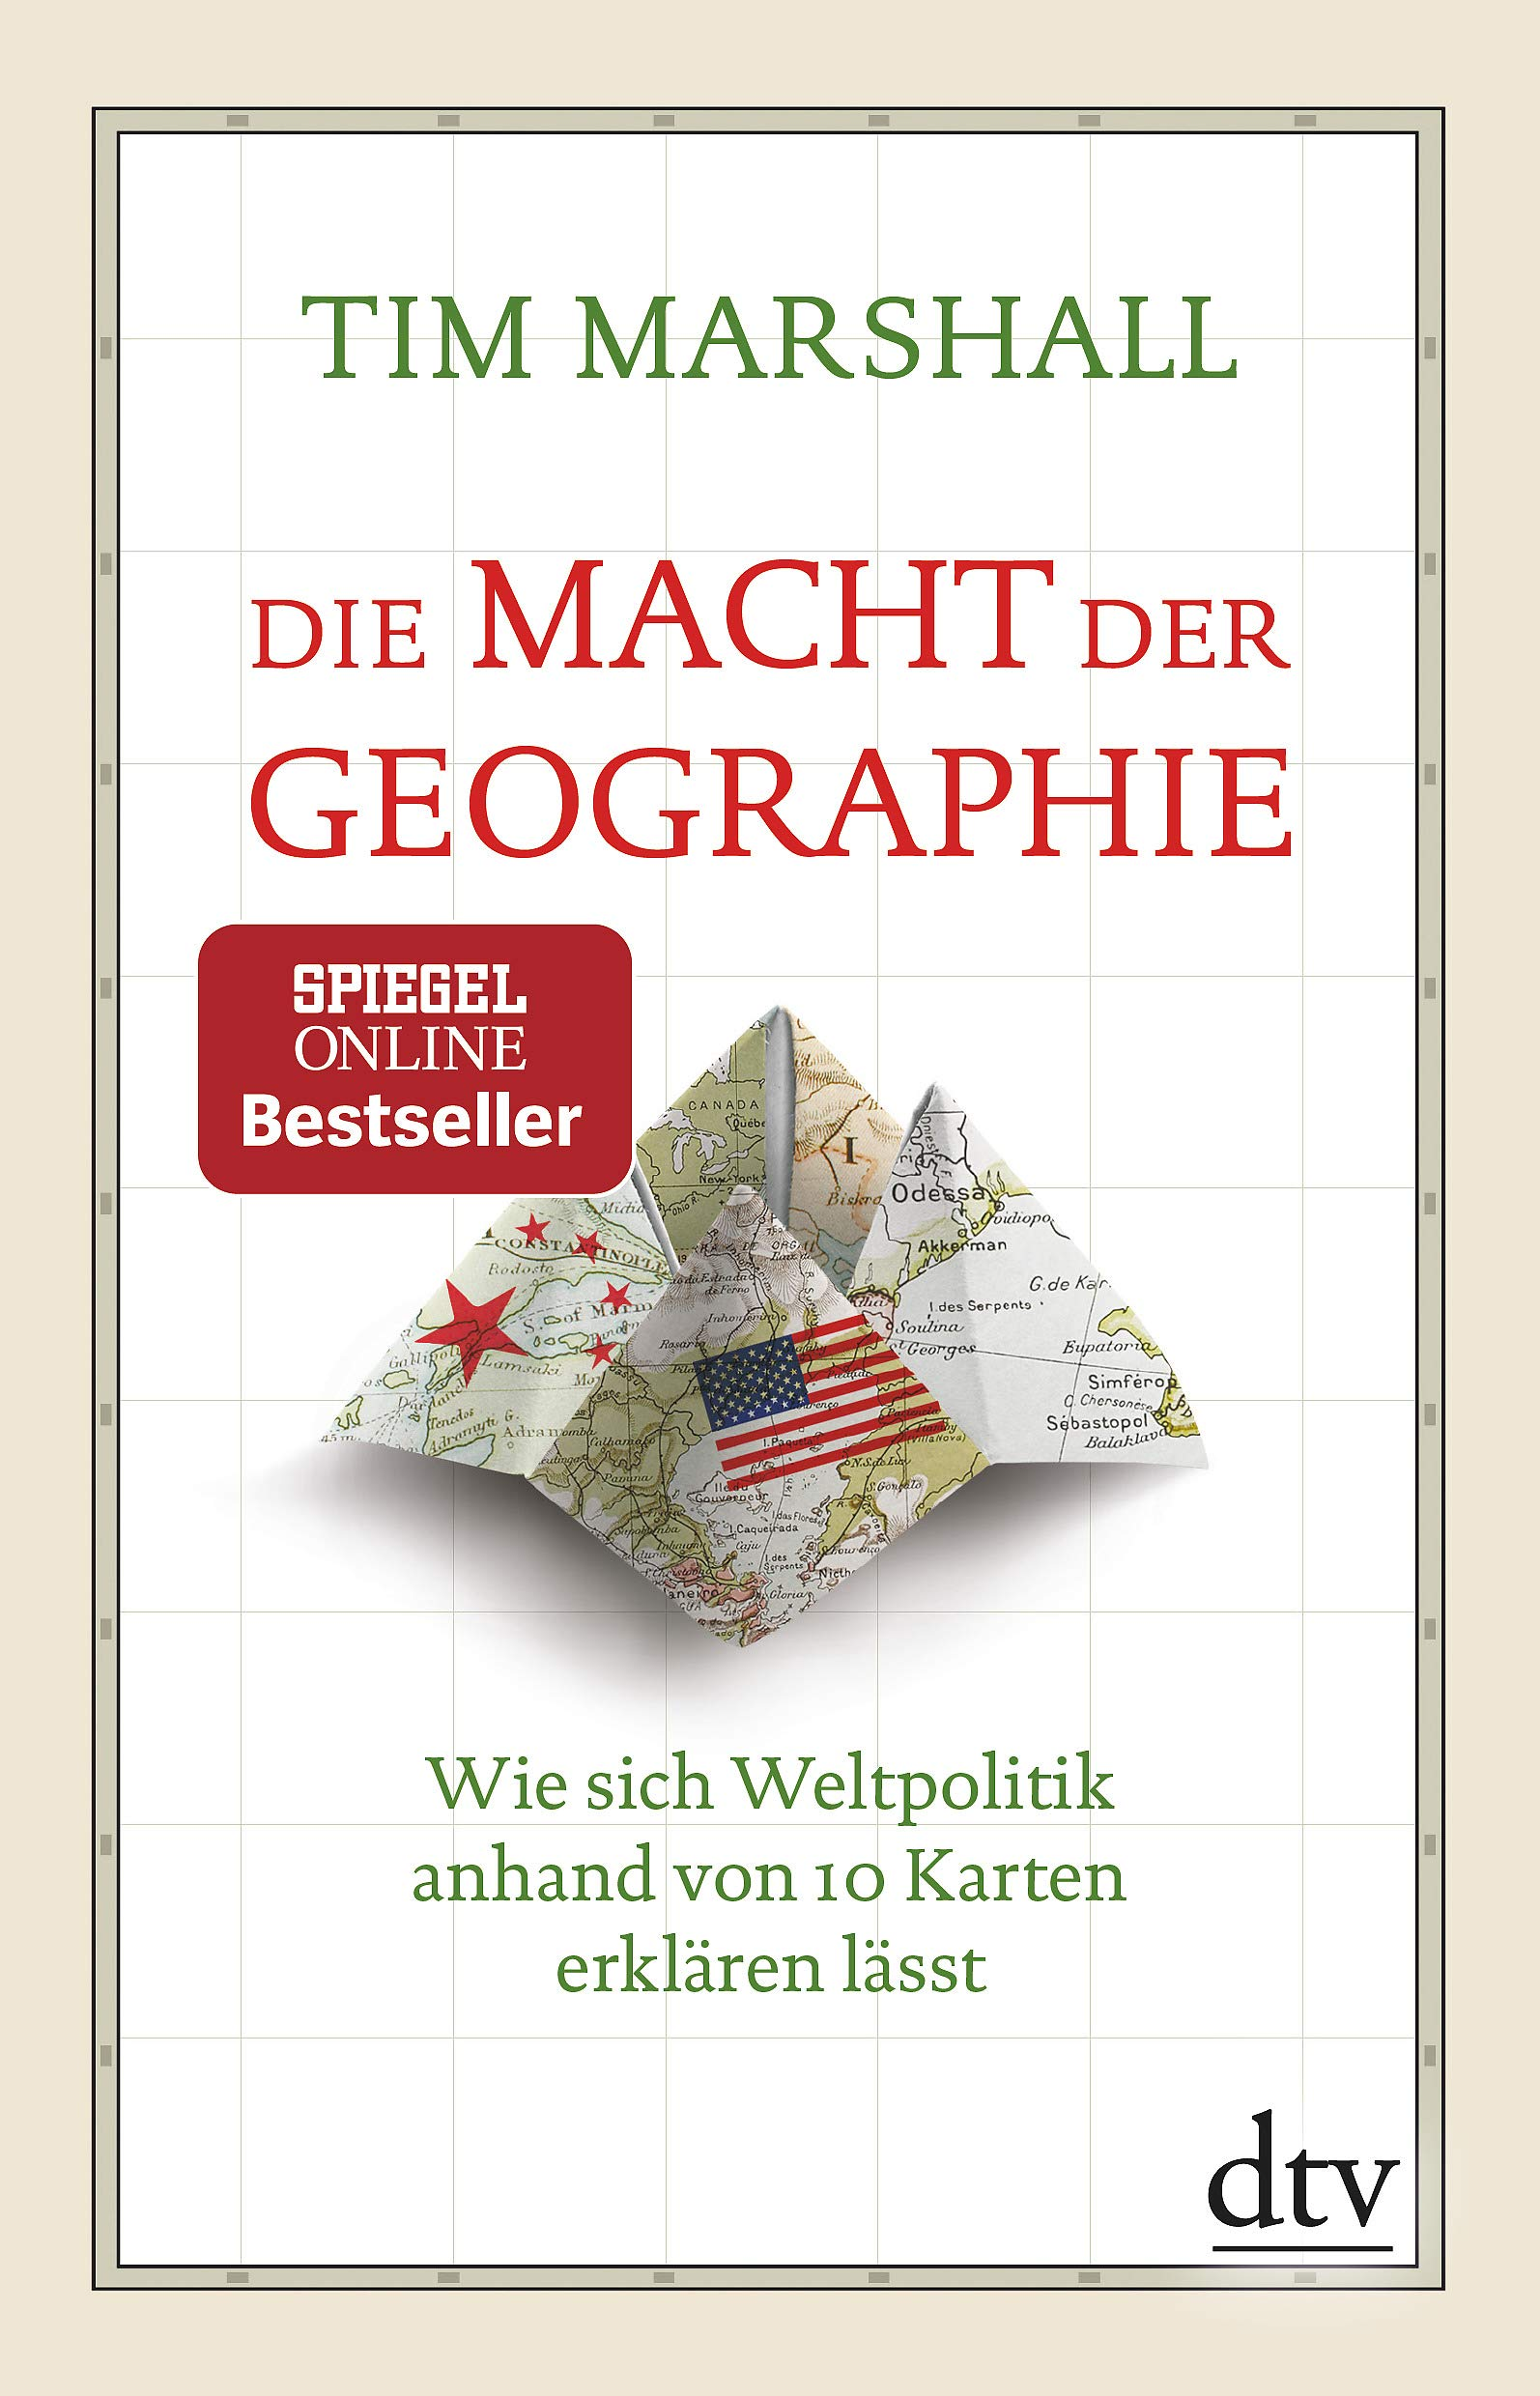 https://juliassammelsurium.blogspot.com/2020/06/rezension-die-macht-der-geographie-tim.html